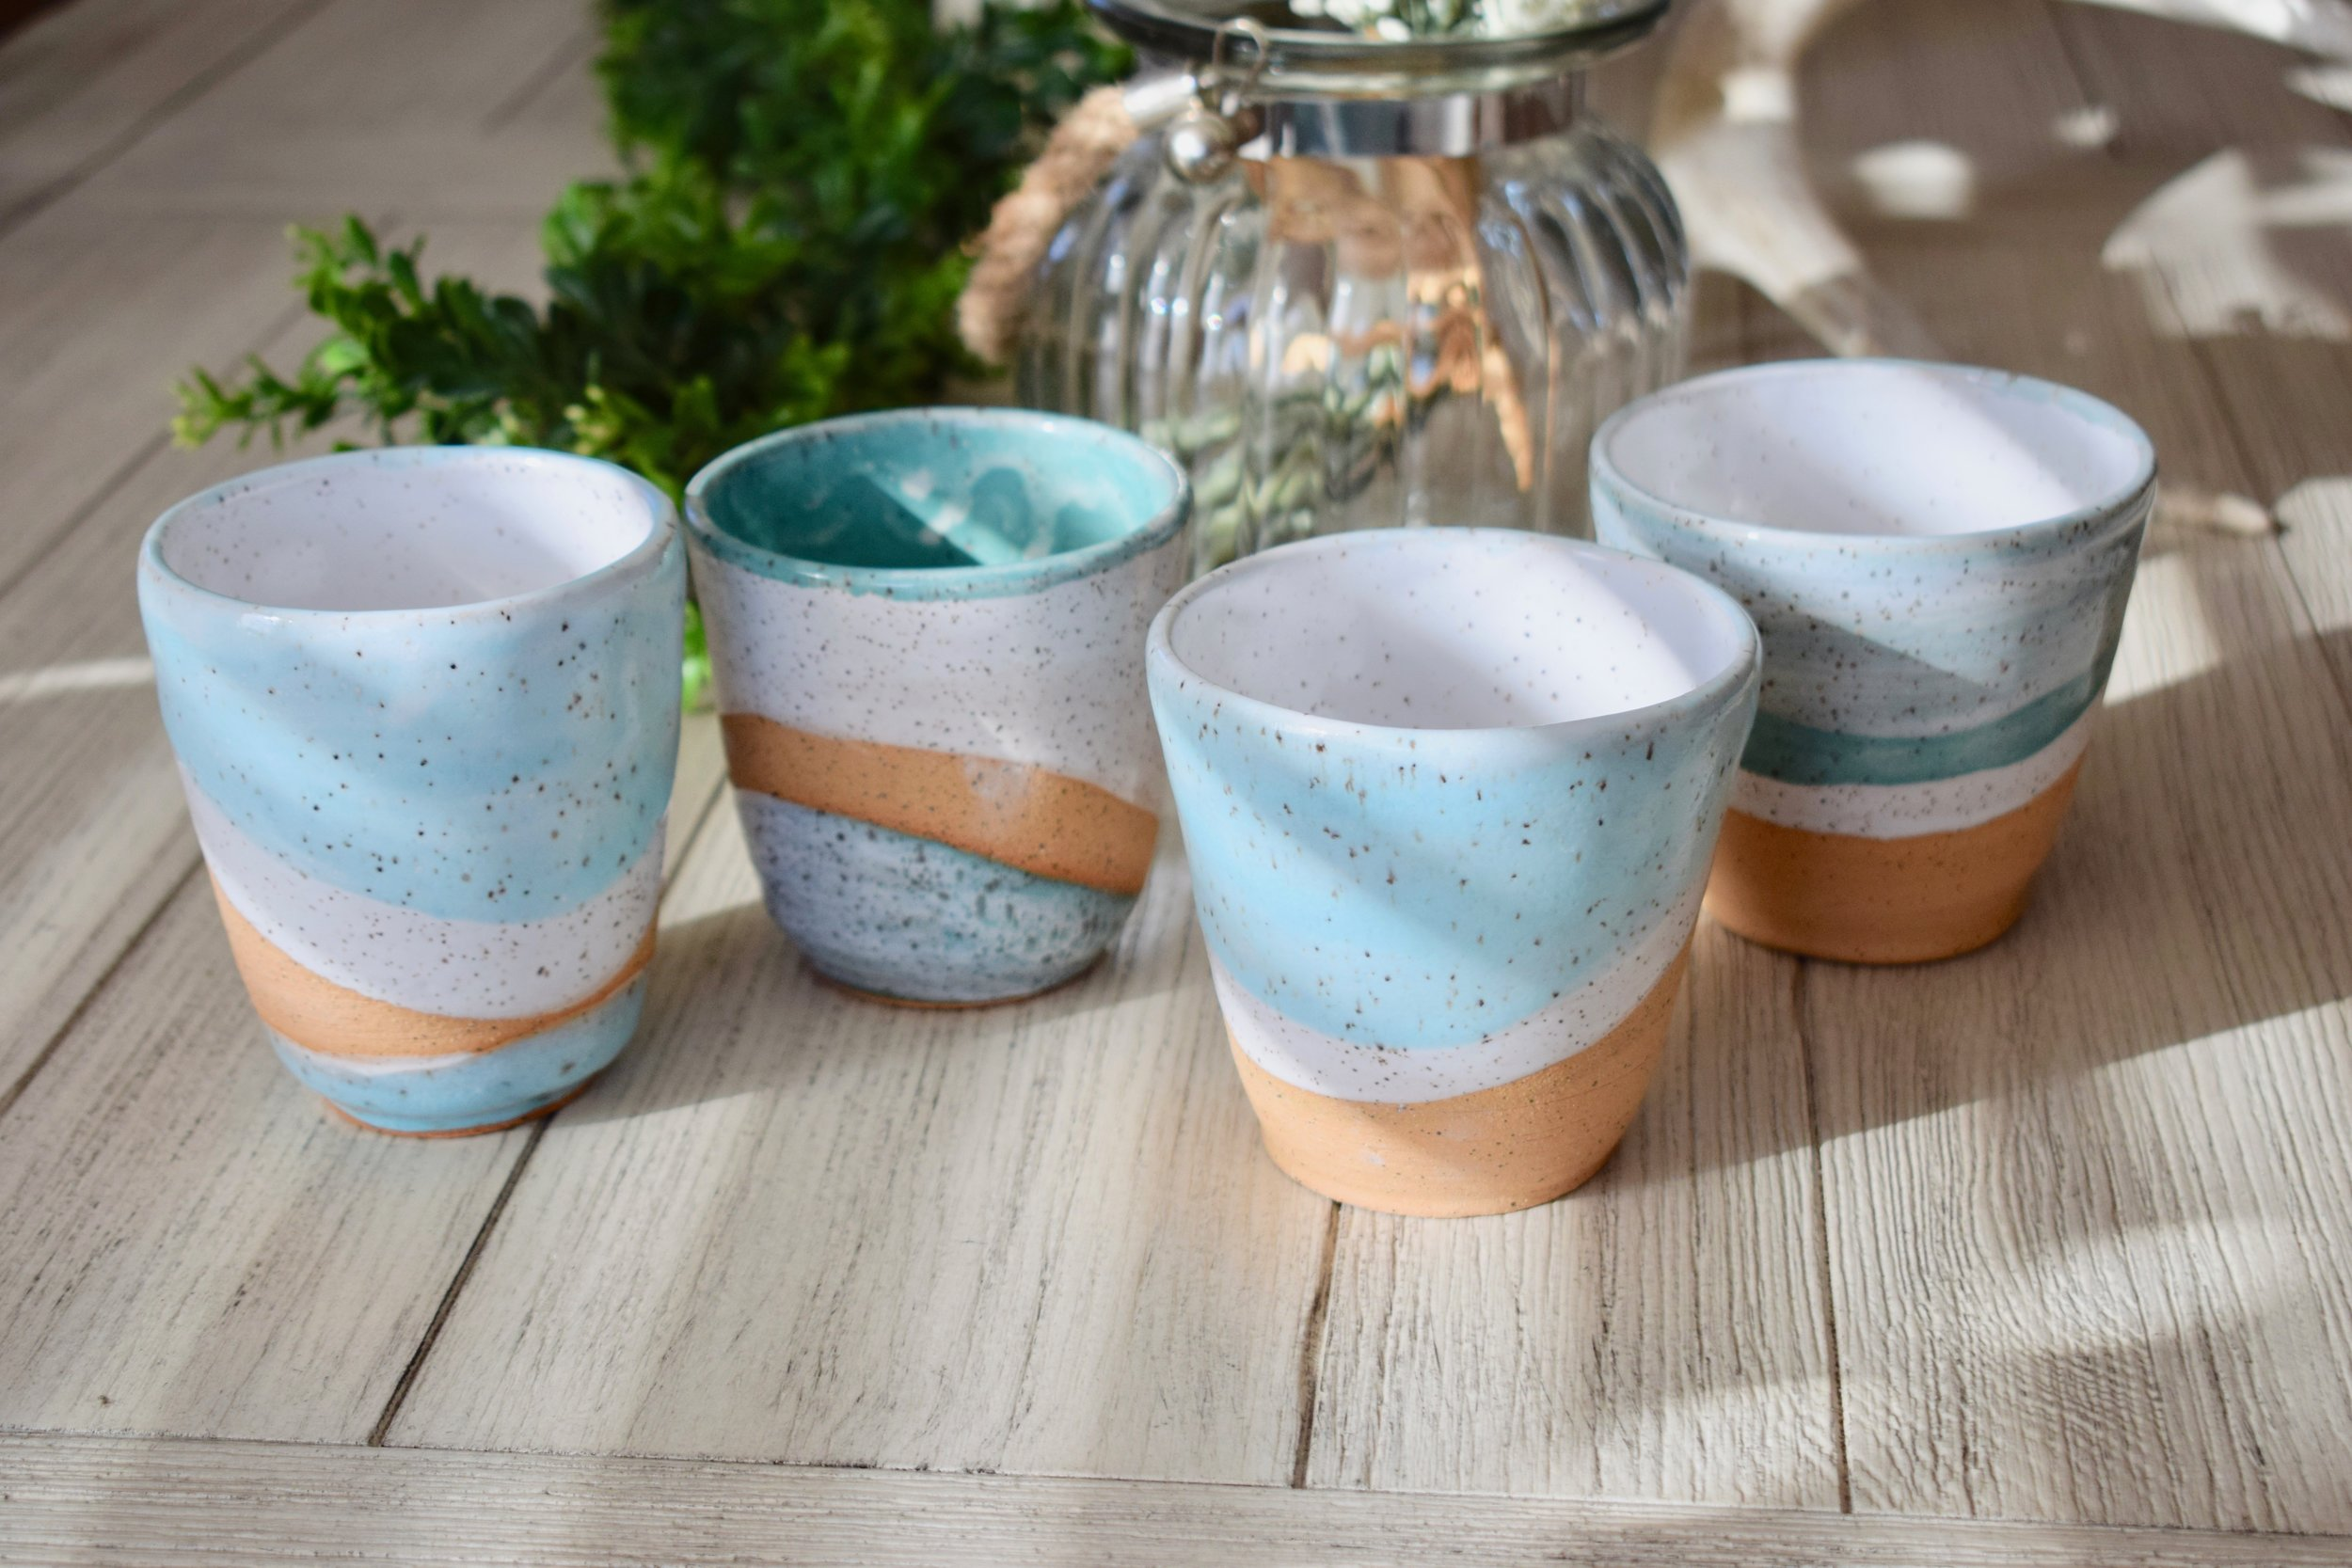 Speckled Pottery